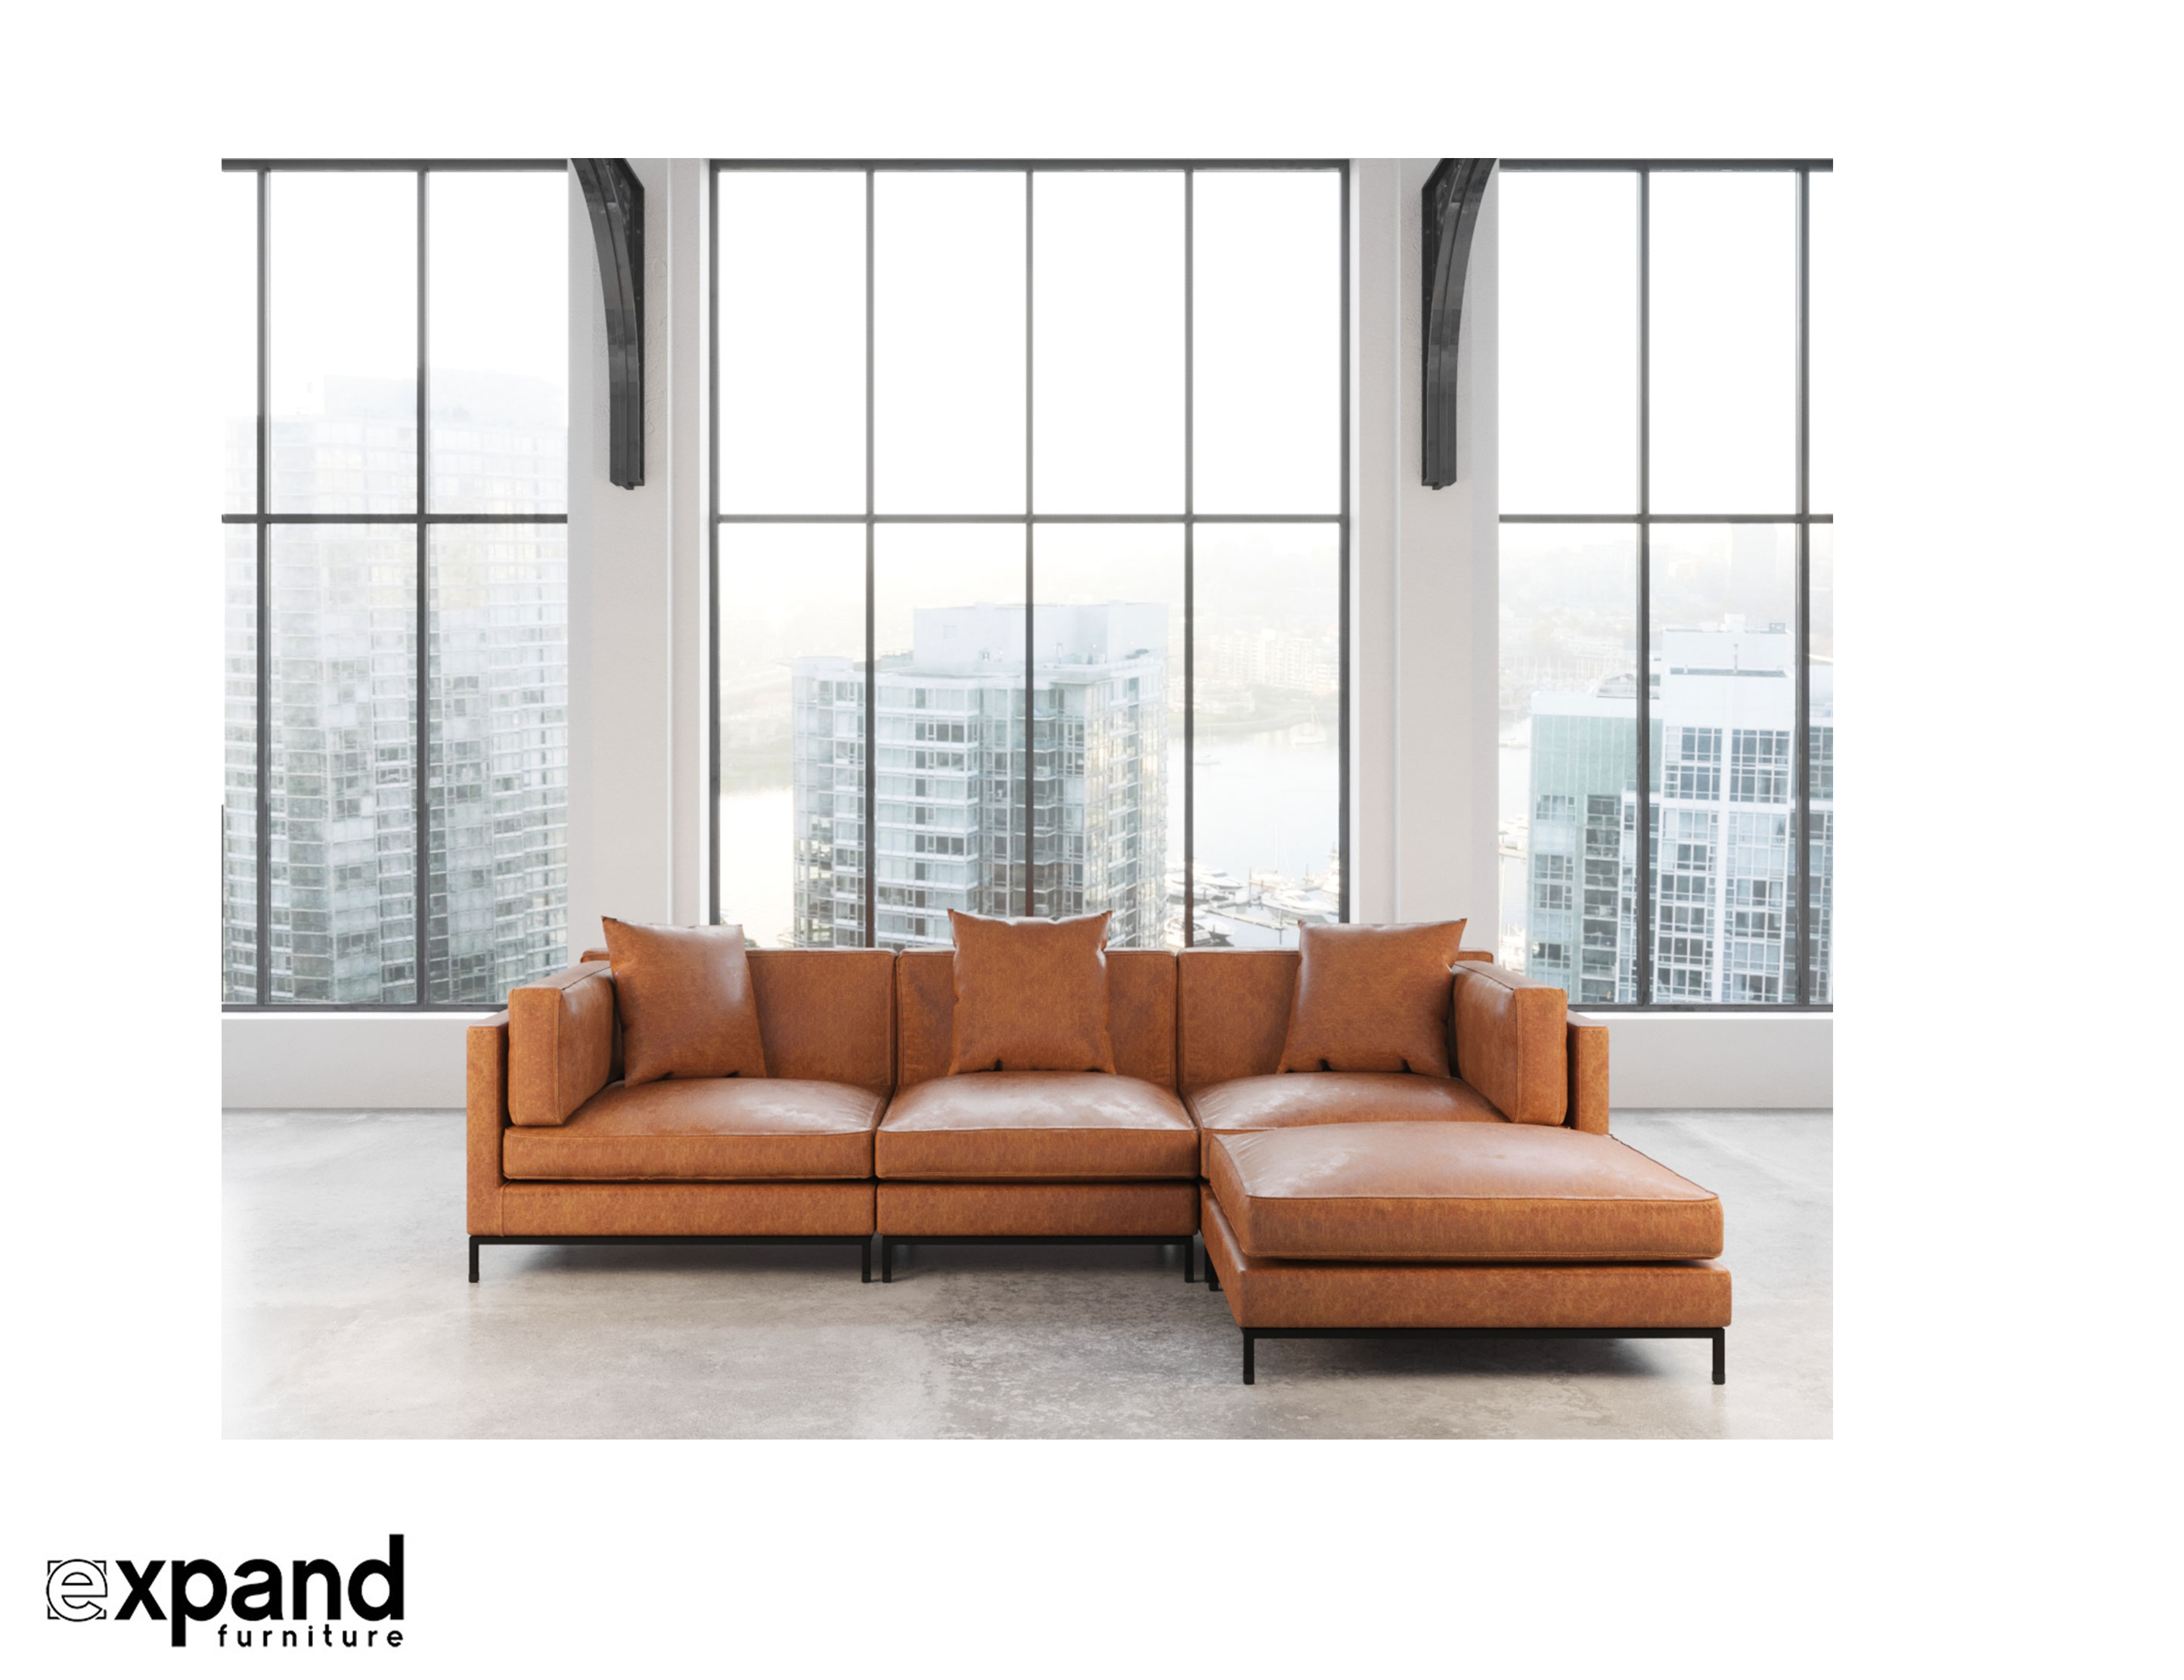 Migliore Sectional - Best Leather or Fabric Modular Sofa Design ...